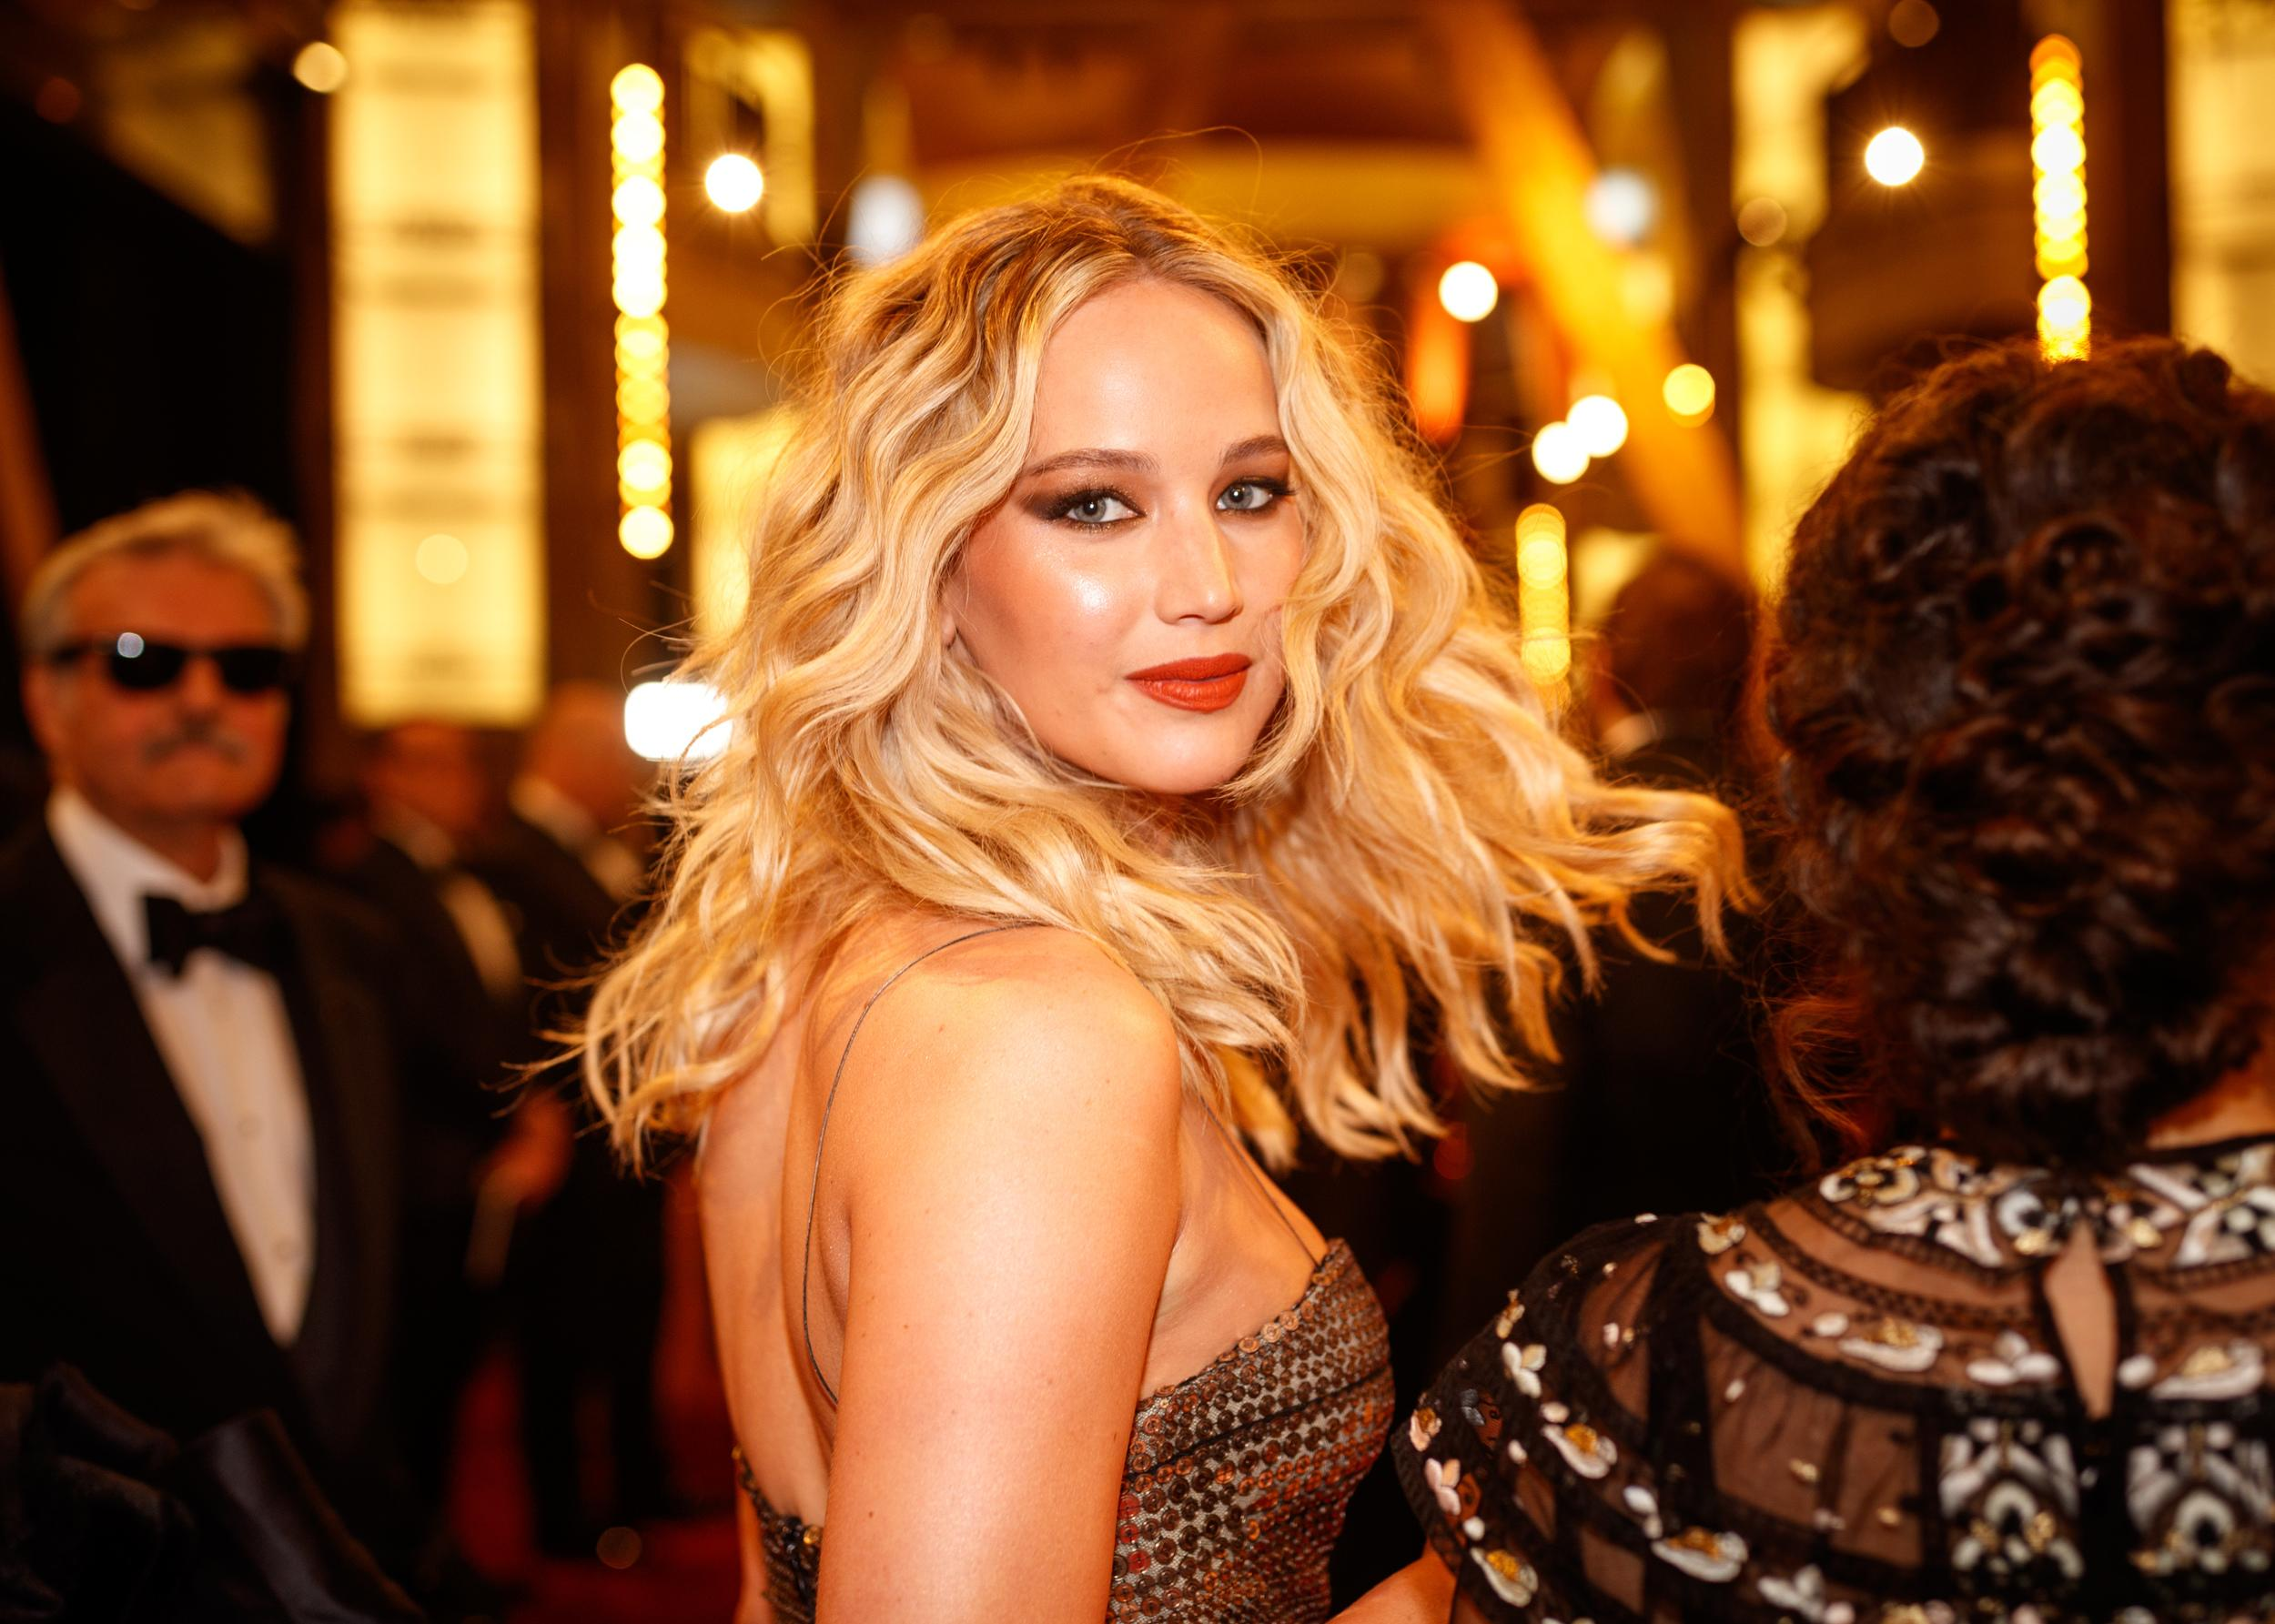 HOLLYWOOD, CA - MARCH 04: Jennifer Lawrence attends the 90th Annual Academy Awards at Hollywood & Highland Center on March 4, 2018 in Hollywood, California. (Photo by Christopher Polk/Getty Images)